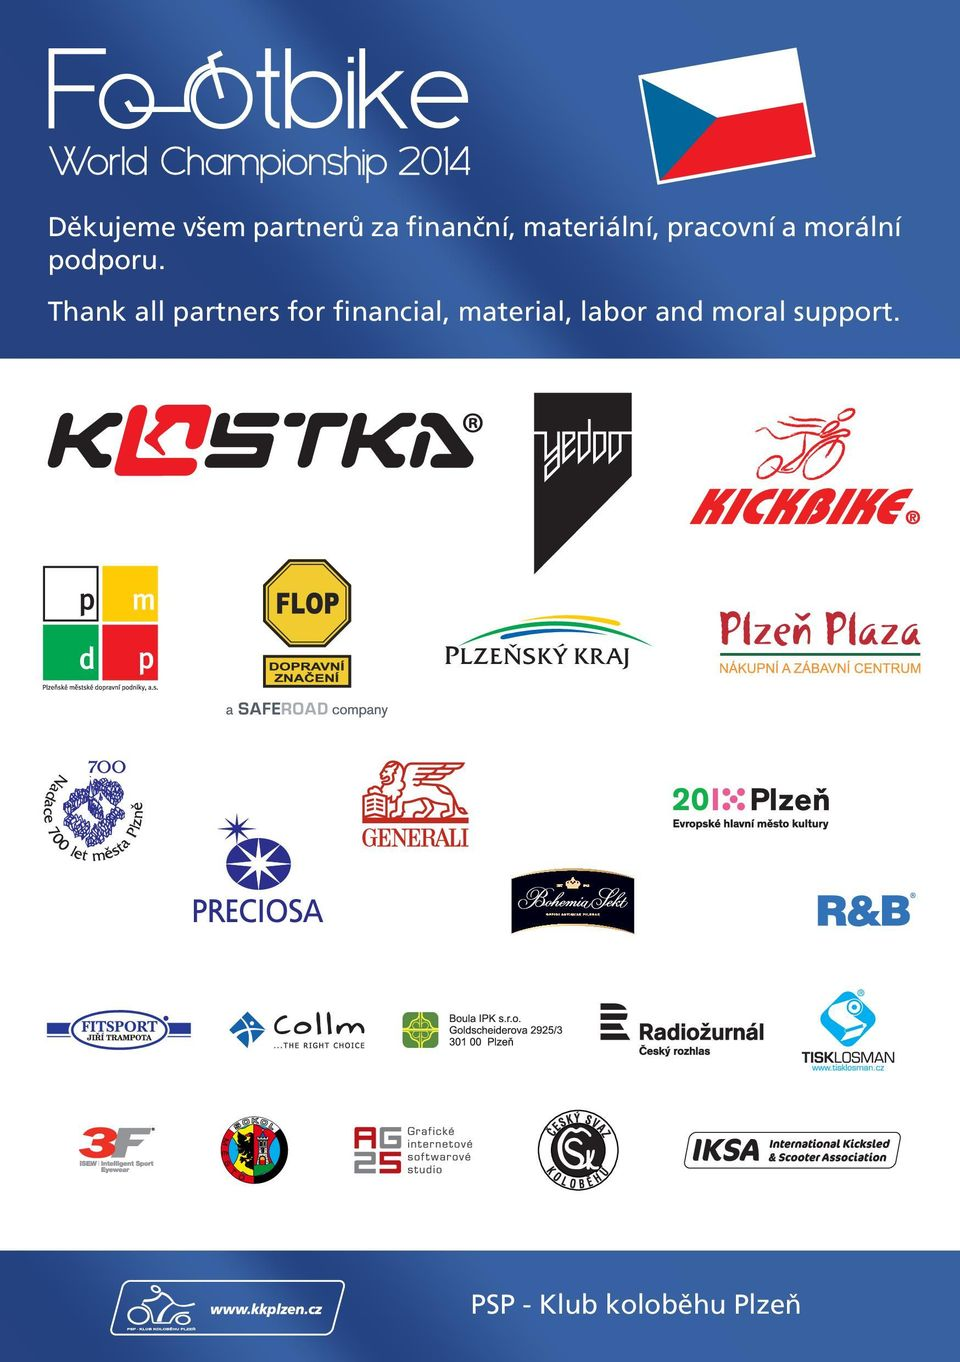 Thank all partners for financial,